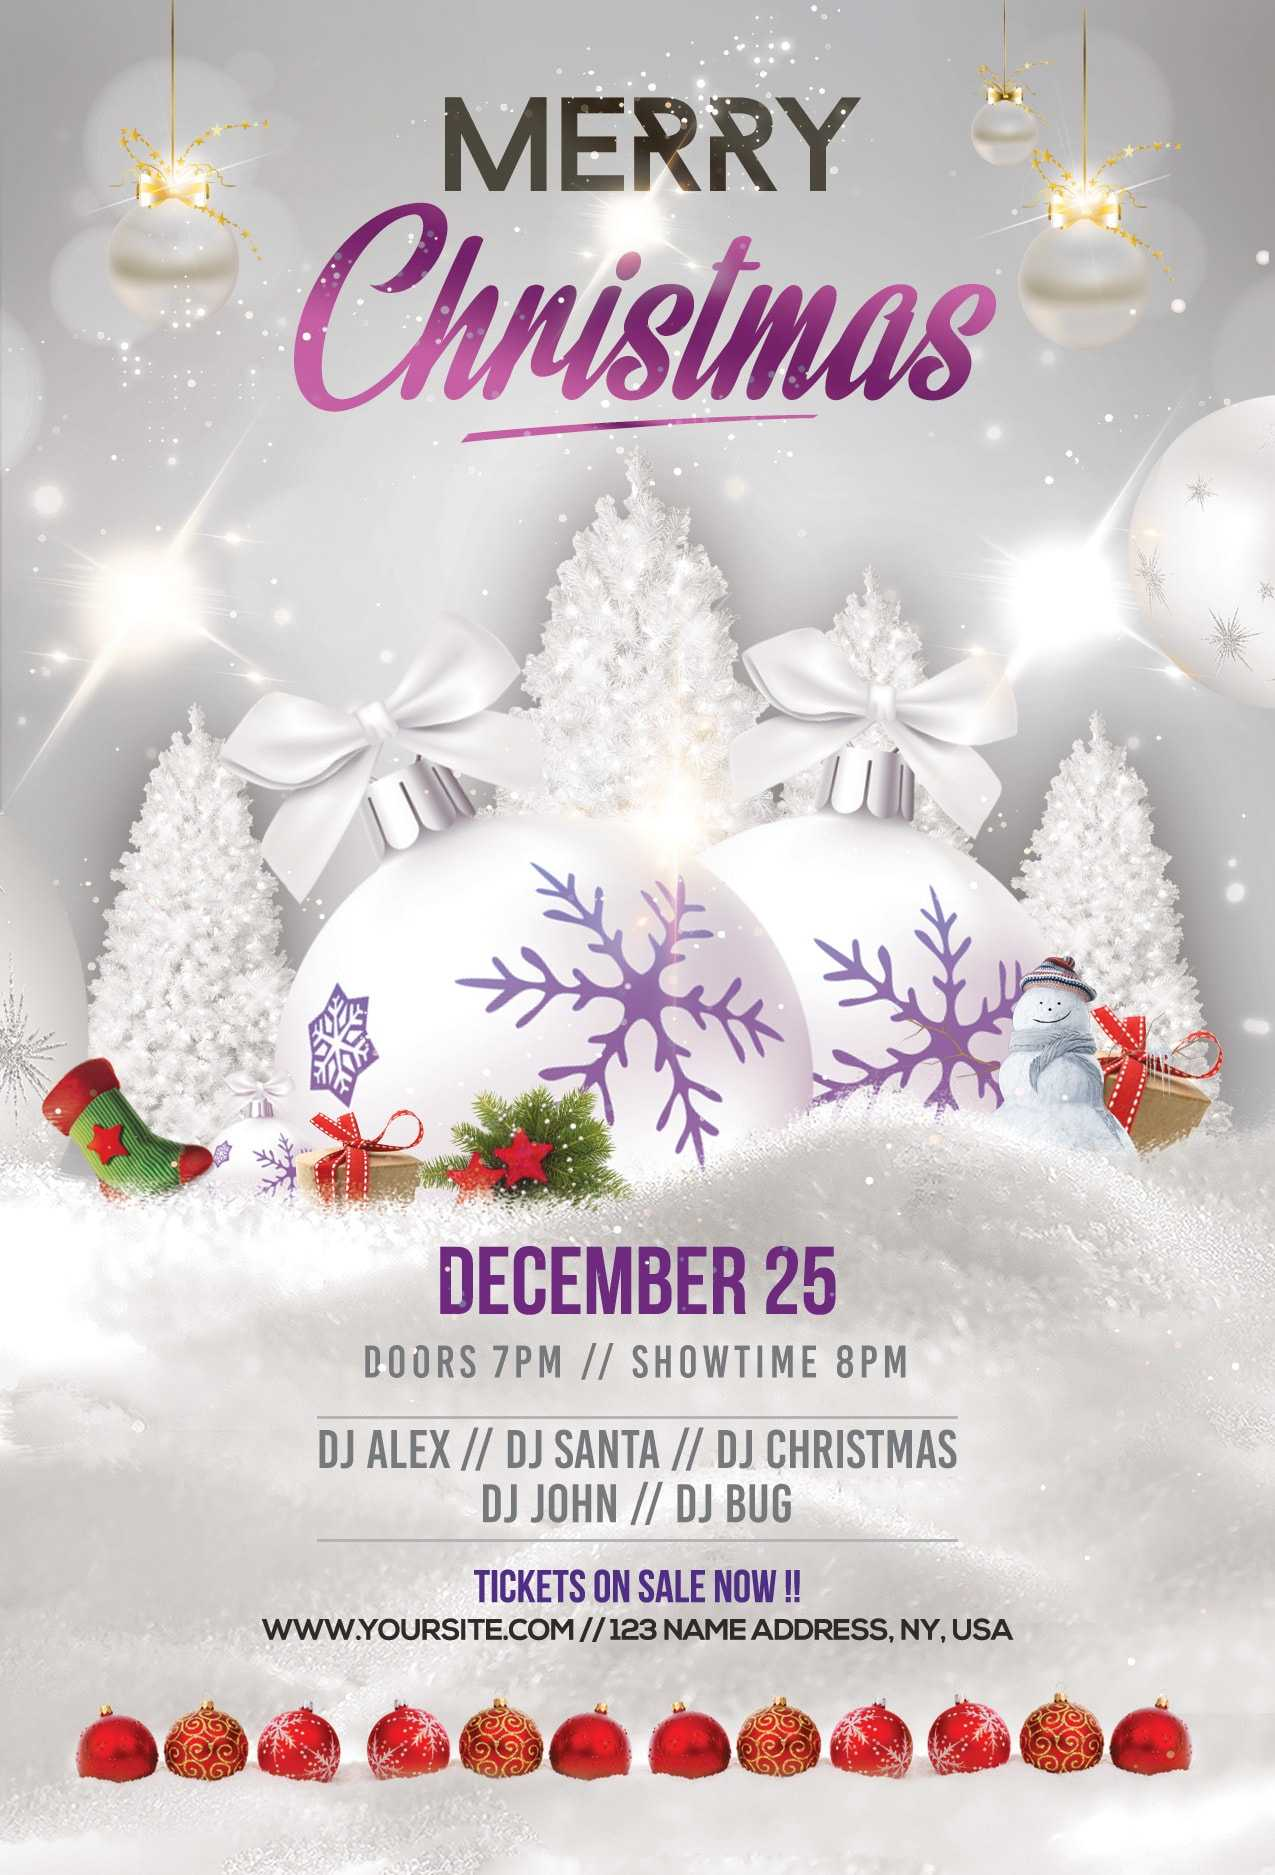 Merry Christmas & Holiday Free Psd Flyer Template - Stockpsd Intended For Christmas Brochure Templates Free